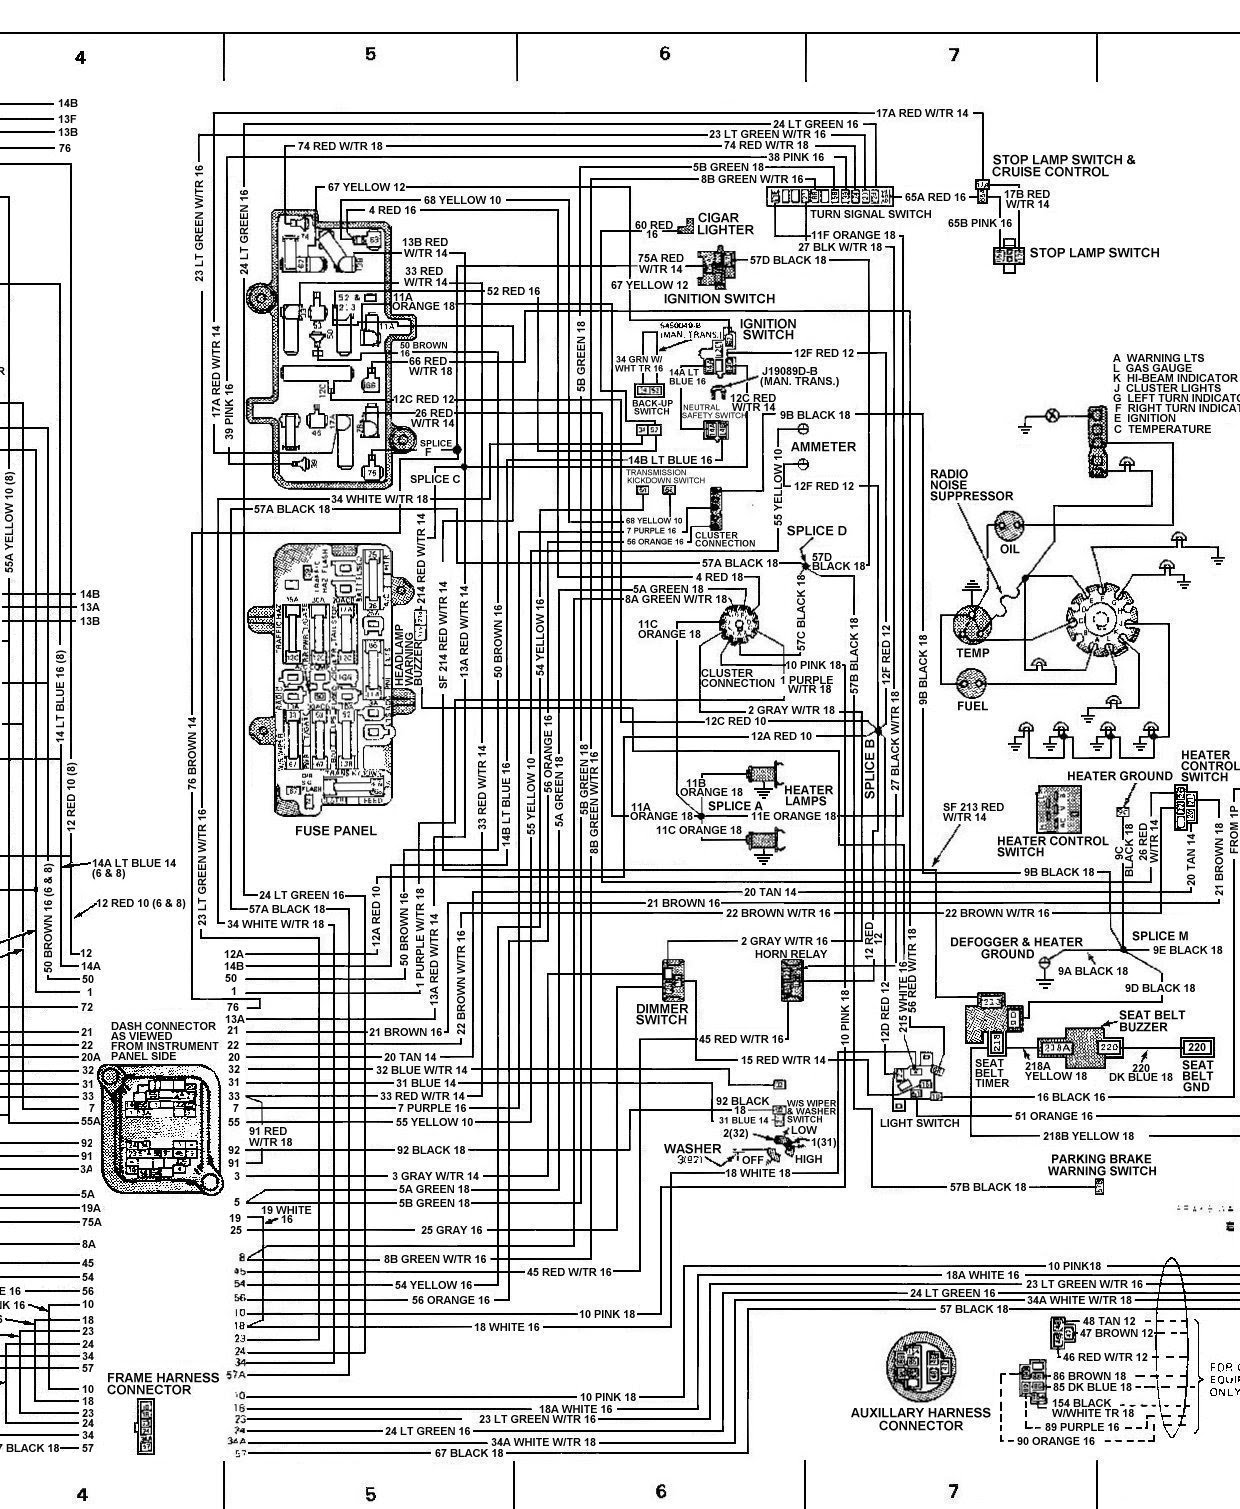 2005 Chrysler 300c Fuse Box Diagram Wiring Libraries 05 Ford 300 Image Details2005